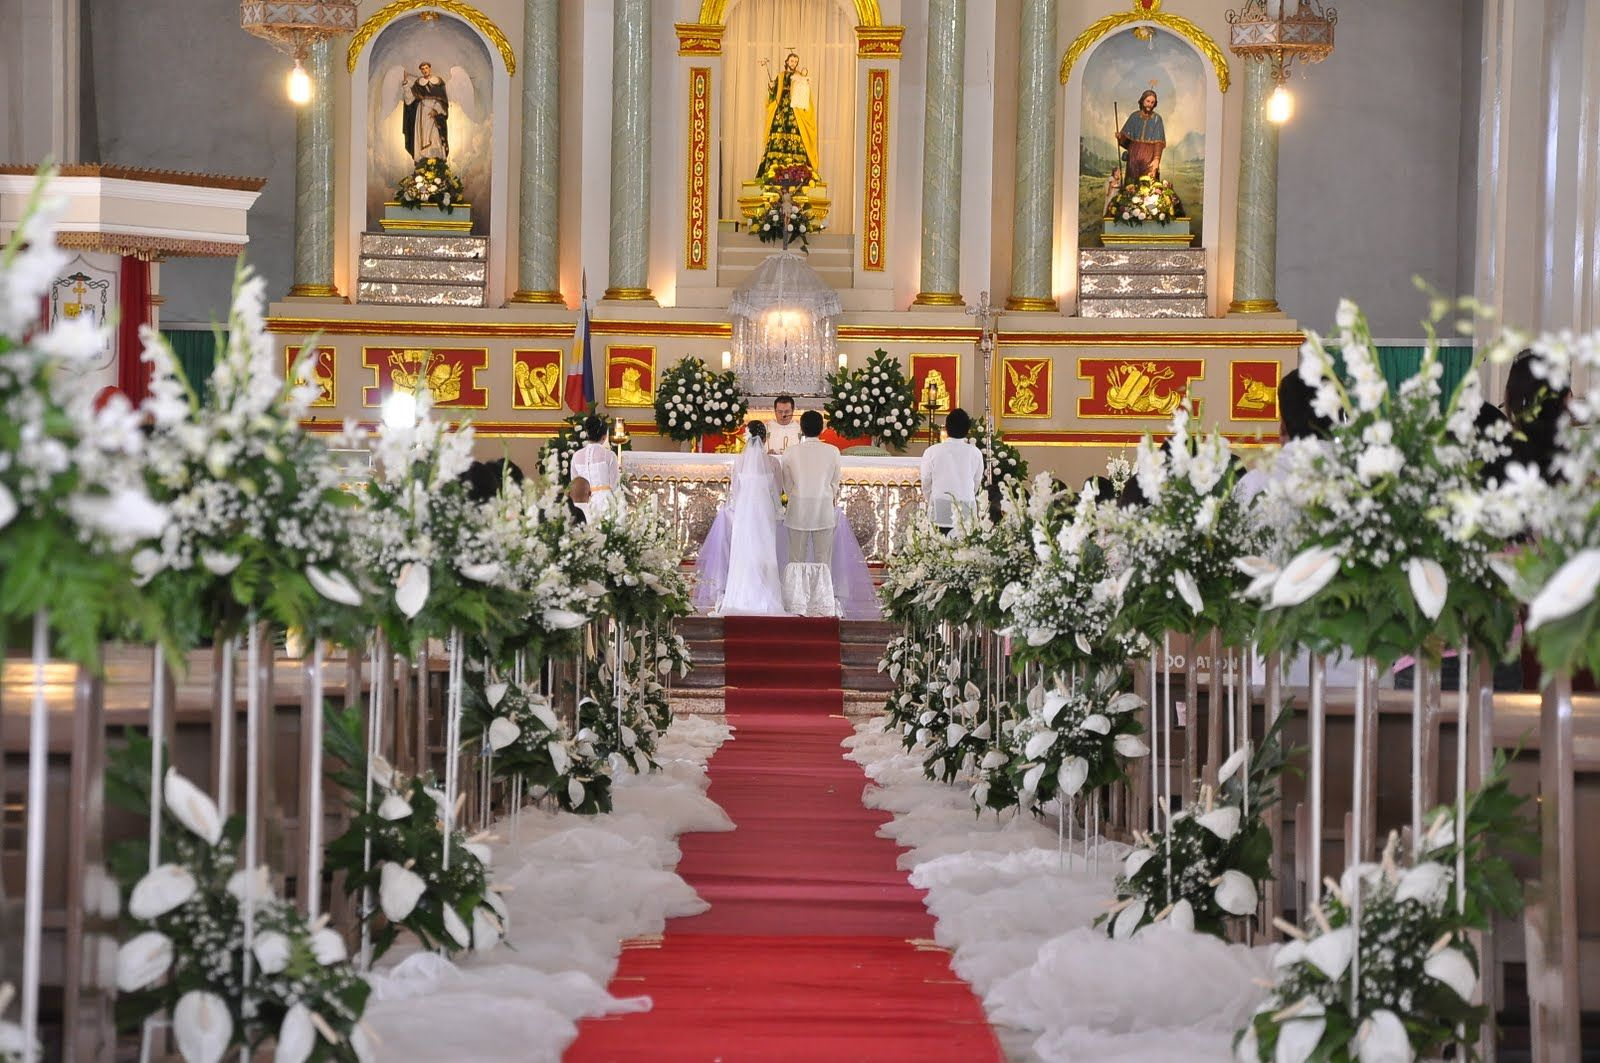 Wedding decorations for church our wedding venue in 2009 we had a wedding decorations for church our wedding venue in 2009 we had a church wedding junglespirit Gallery